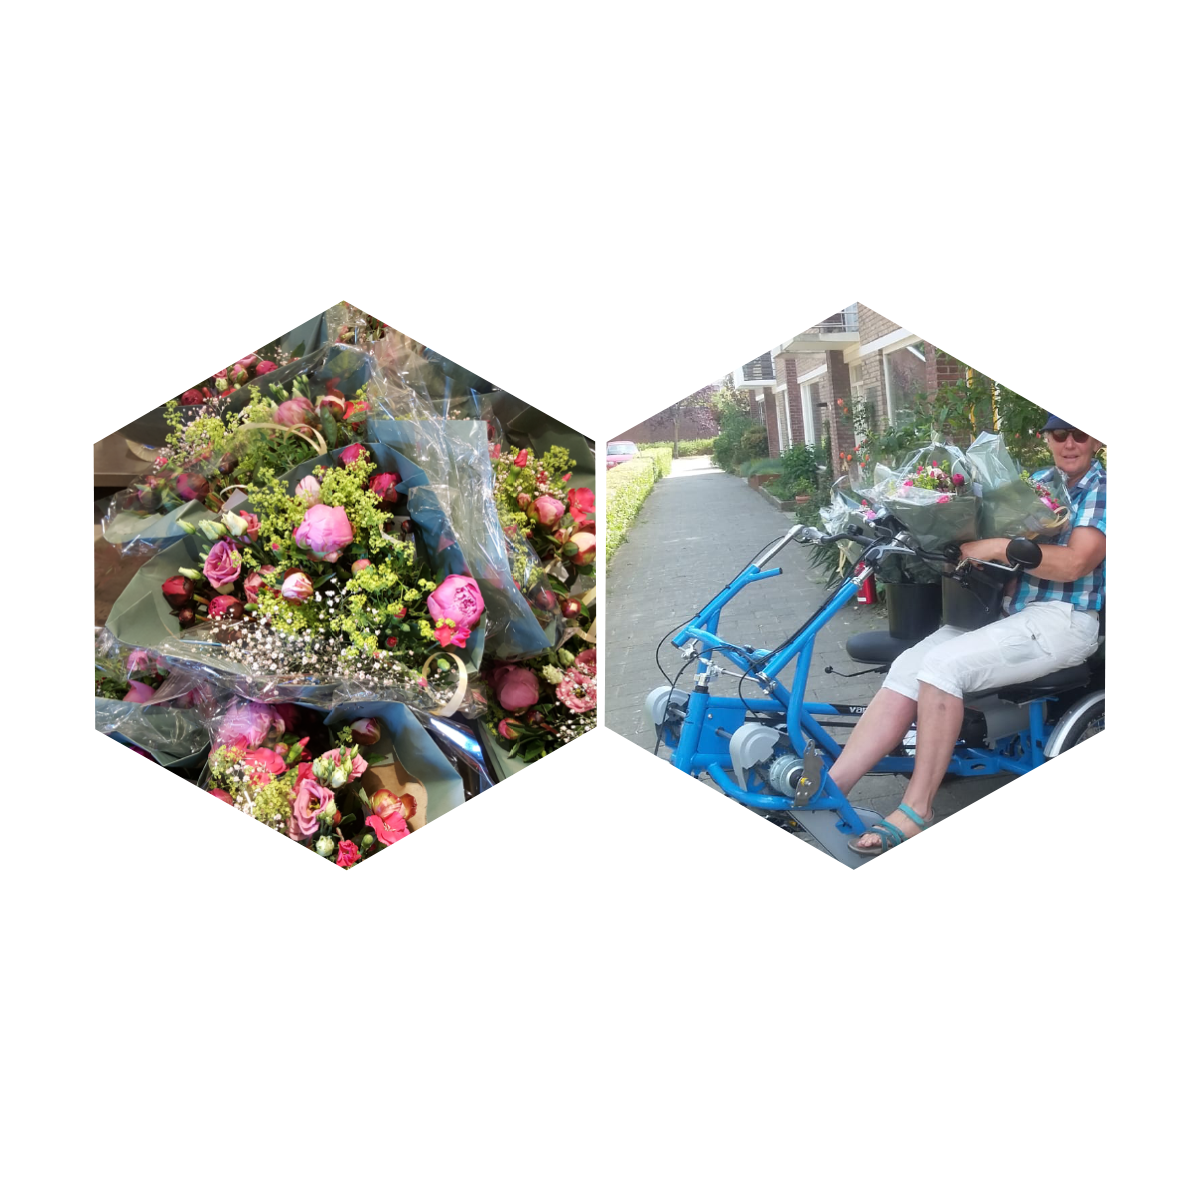 <strong>Swapping bike tours for flowers</strong>